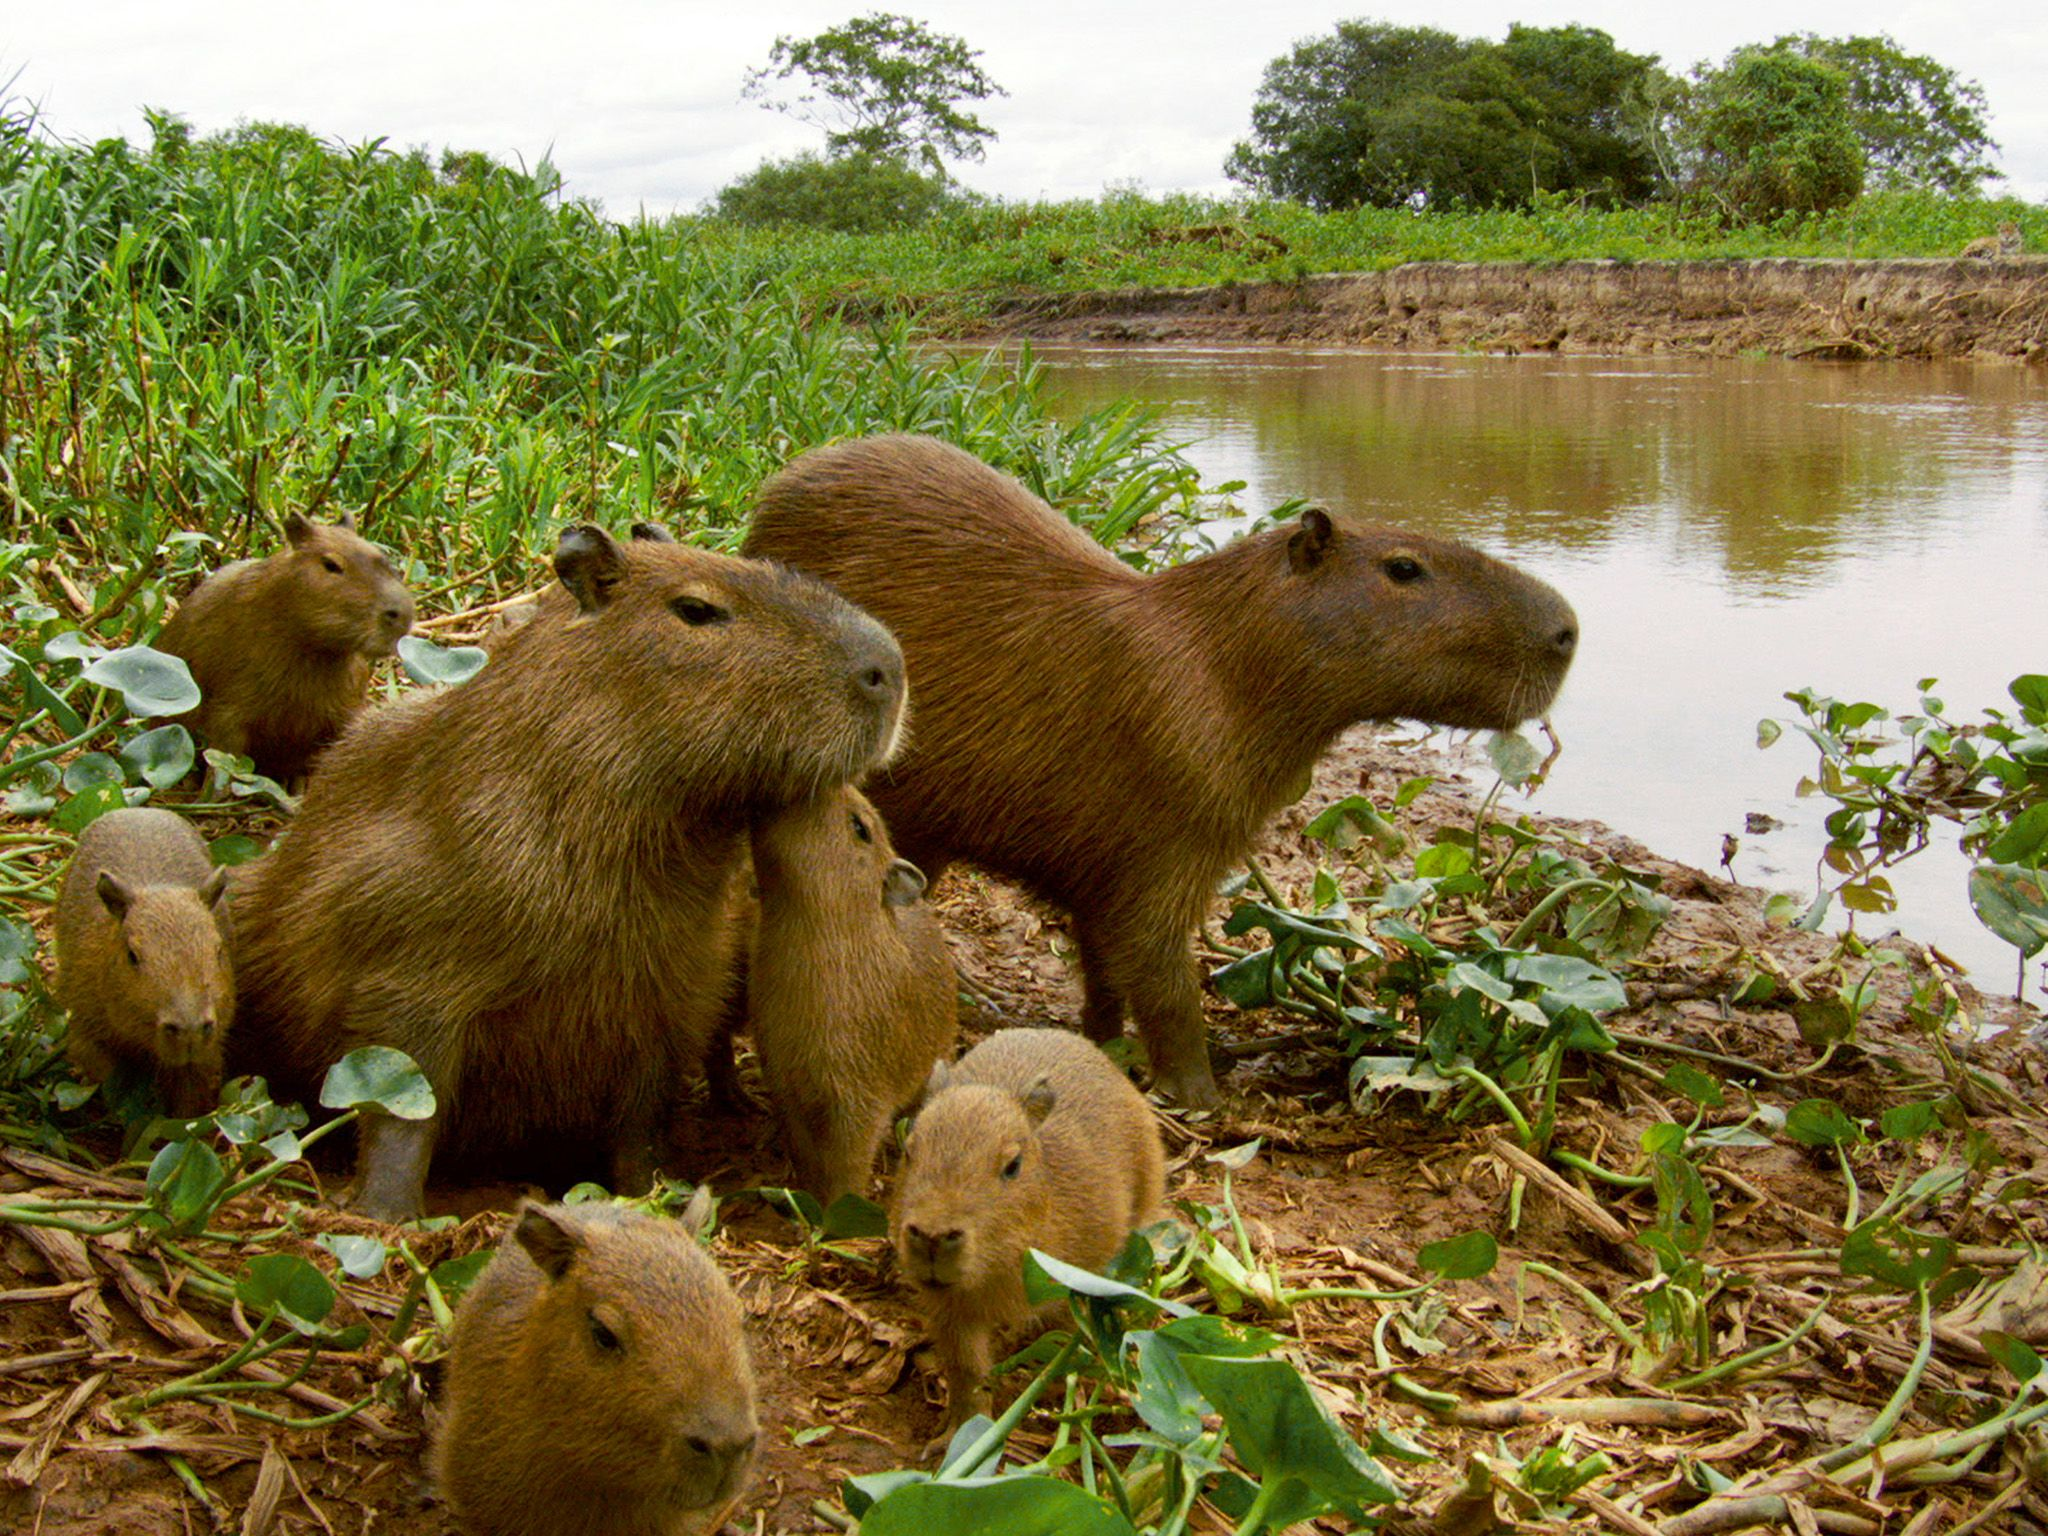 Pantanal, Brazil: Capybara (Hydrochoerus hydrochaeris) two adults with five young. This image is... [Photo of the day - February 2015]